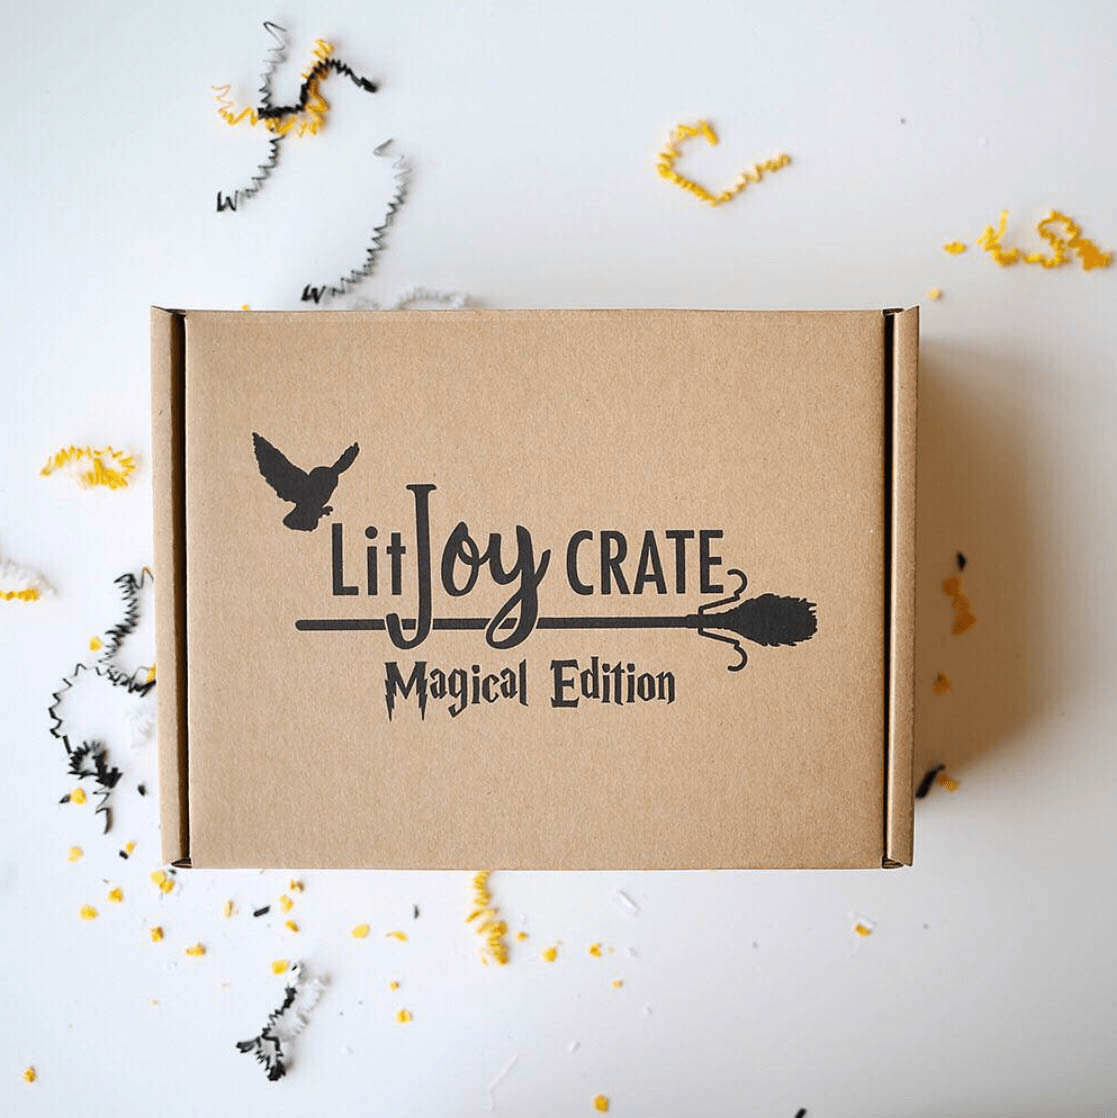 LitJoy Crate Magical Edition Year Five Box Available For Pre-Order Now + Spoiler!